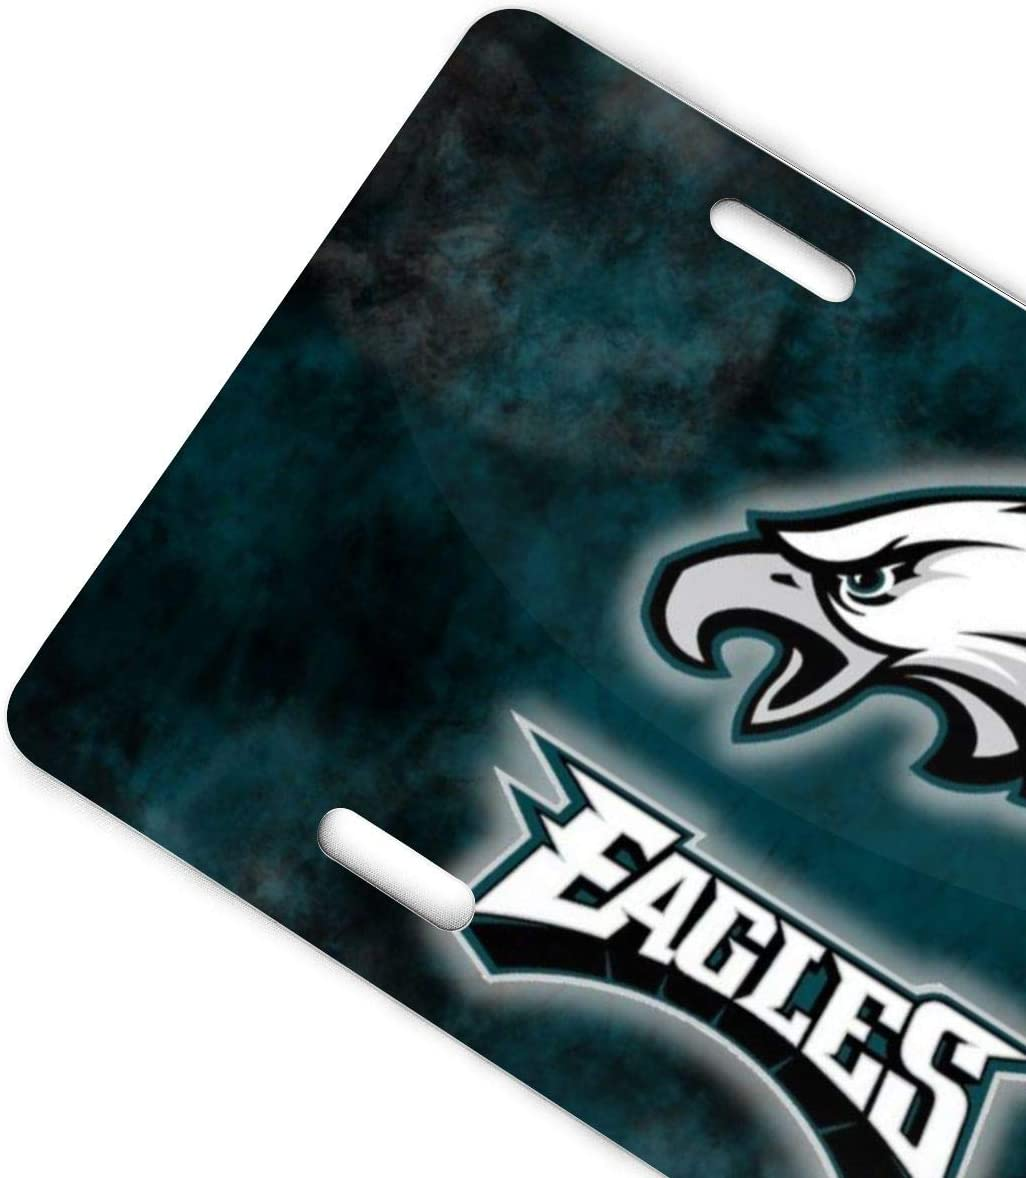 Philadelphia Sport Teams Combined Logo Novelty License Plate Decorative Vanity Grey Aluminum car tag